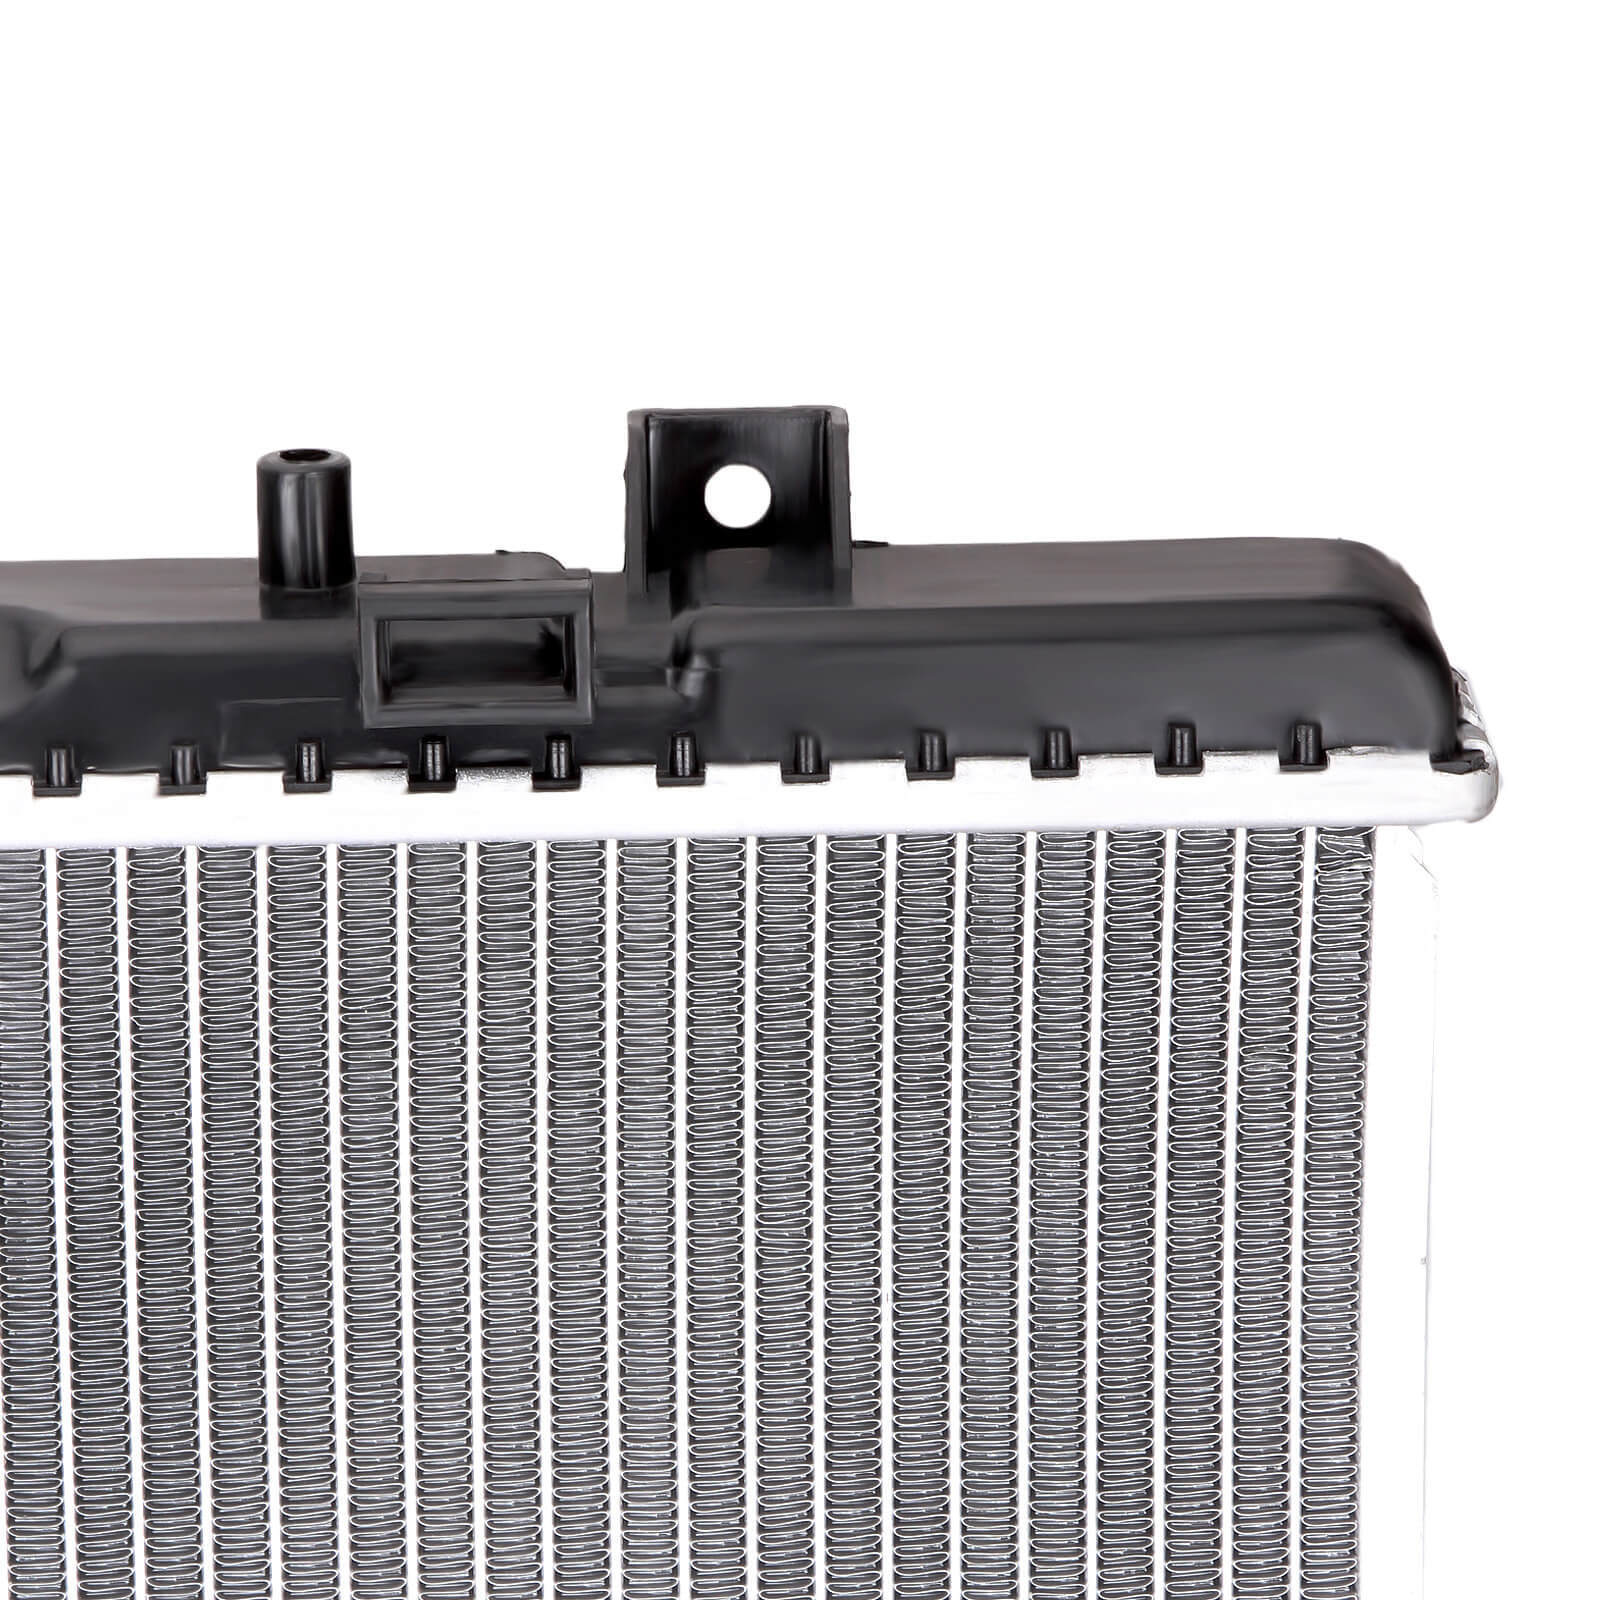 Dromedary Brand sv8sshsv 20042006 vy holden radiators for sale